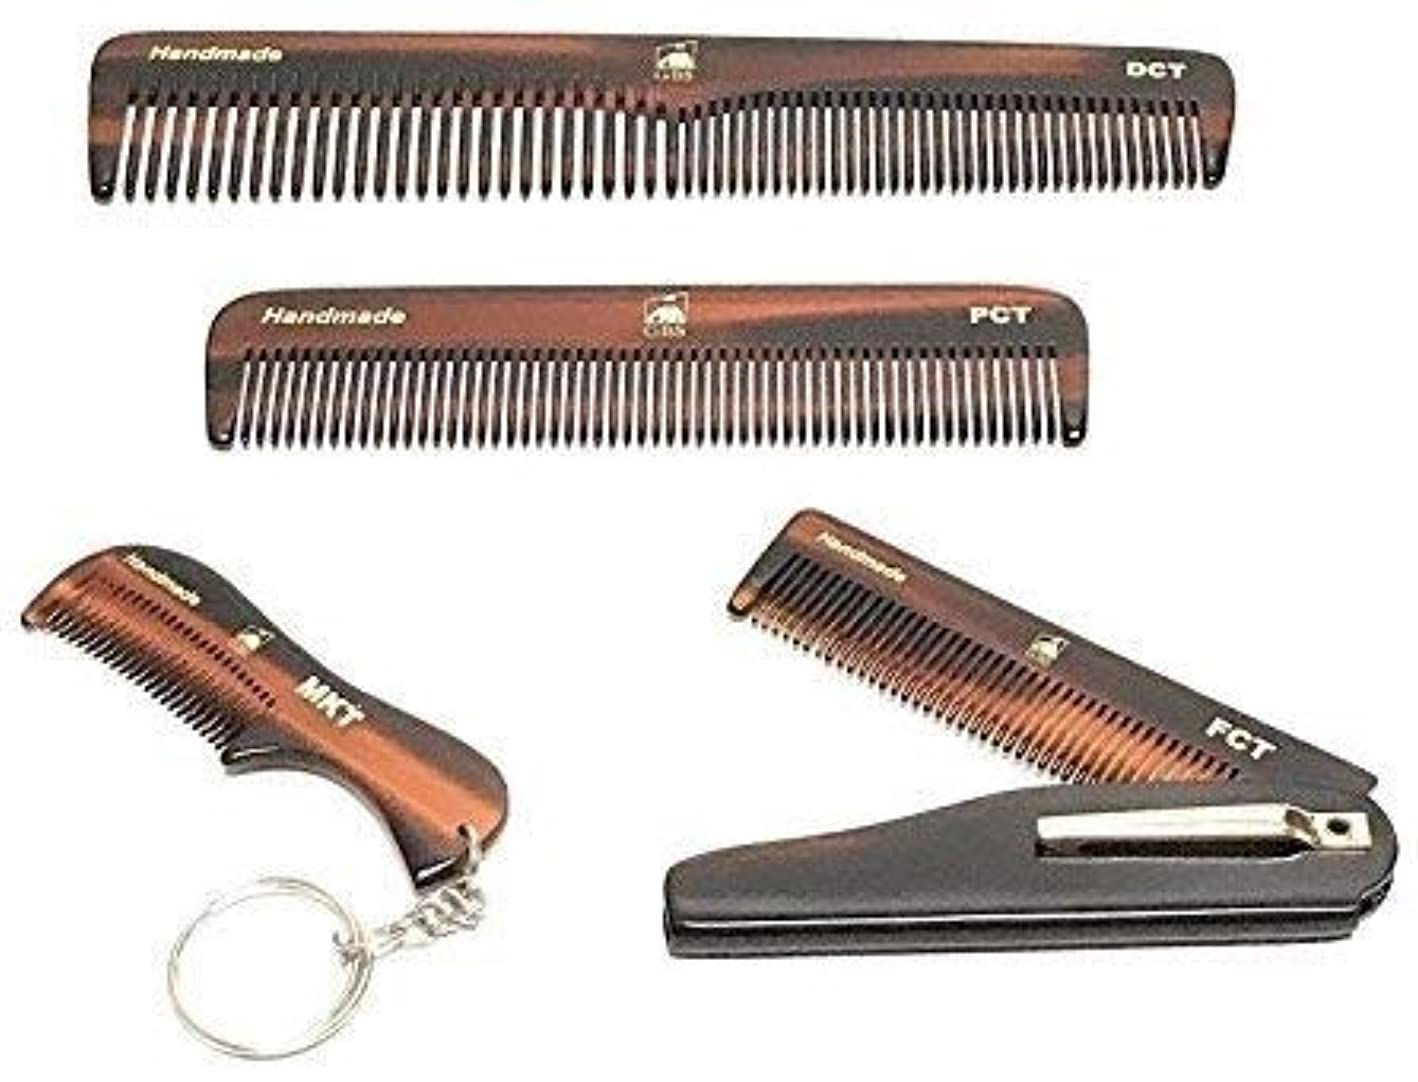 GBS Handmade Styling Anti-Static No Snag Saw-cut Teeth Grooming Hair and Beard Comb Set - For Mens Care - Dressing...